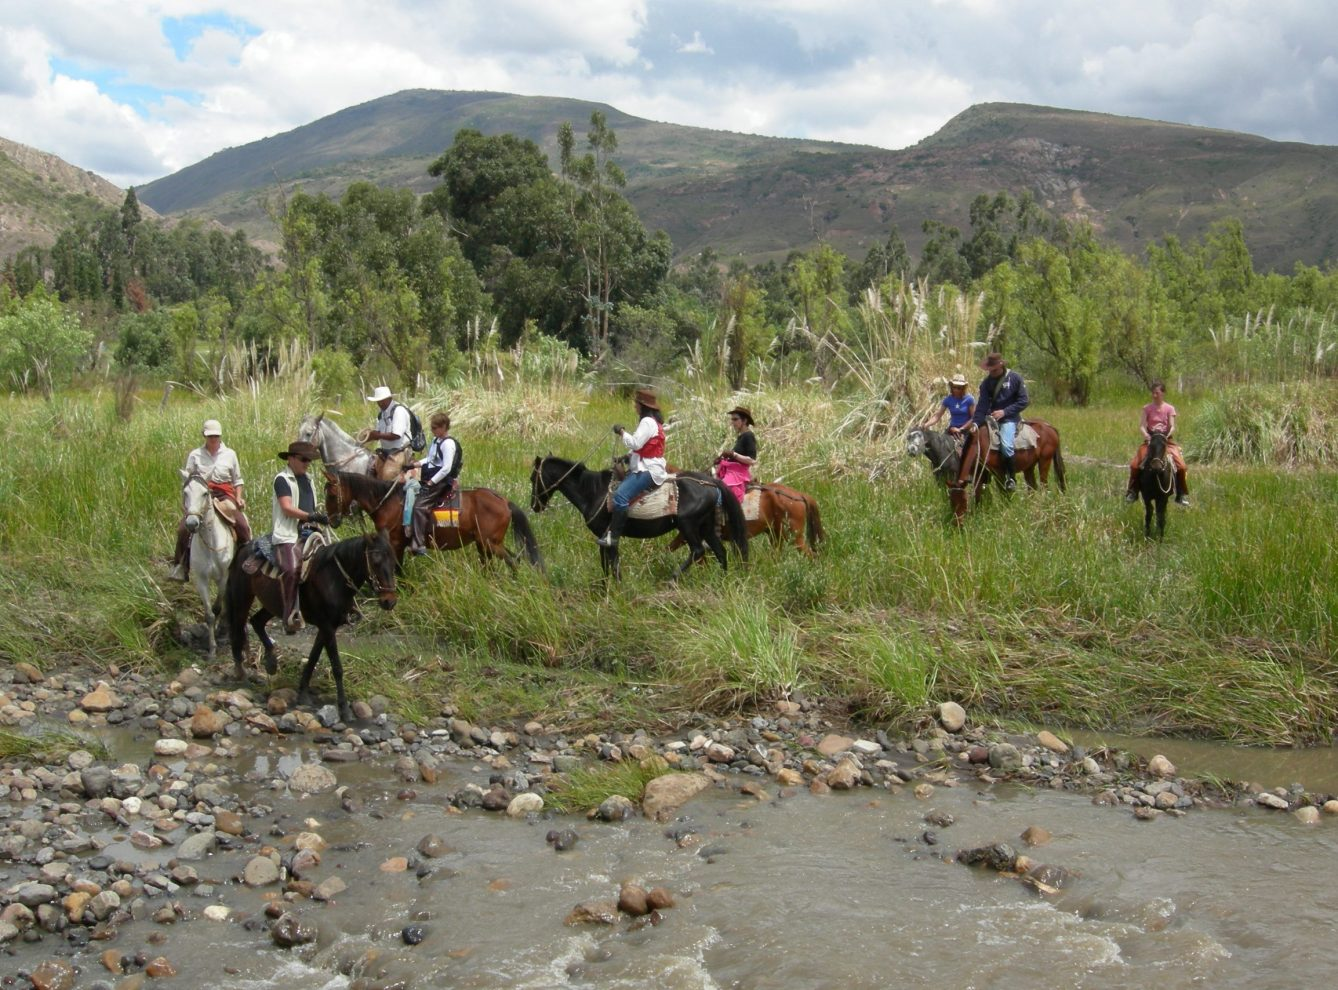 Horse Backriding at Villa de Leyva, Desert (5)